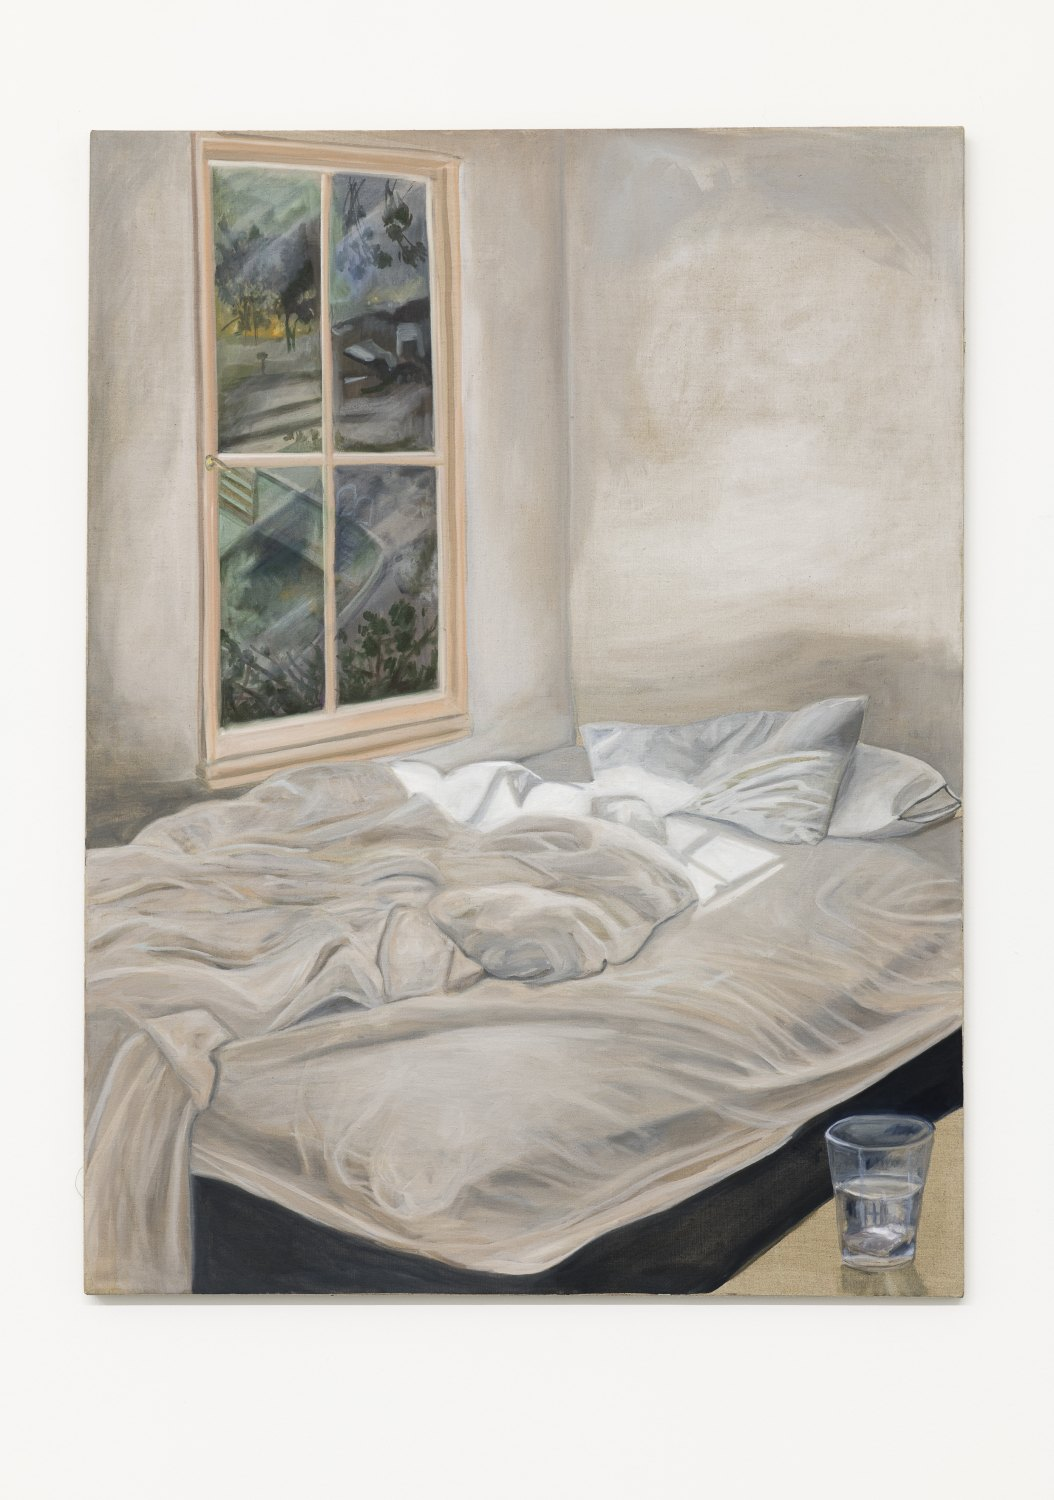 Jill Mulleady Insomnia, 2018 Oil on linen, 122 x 92 cm